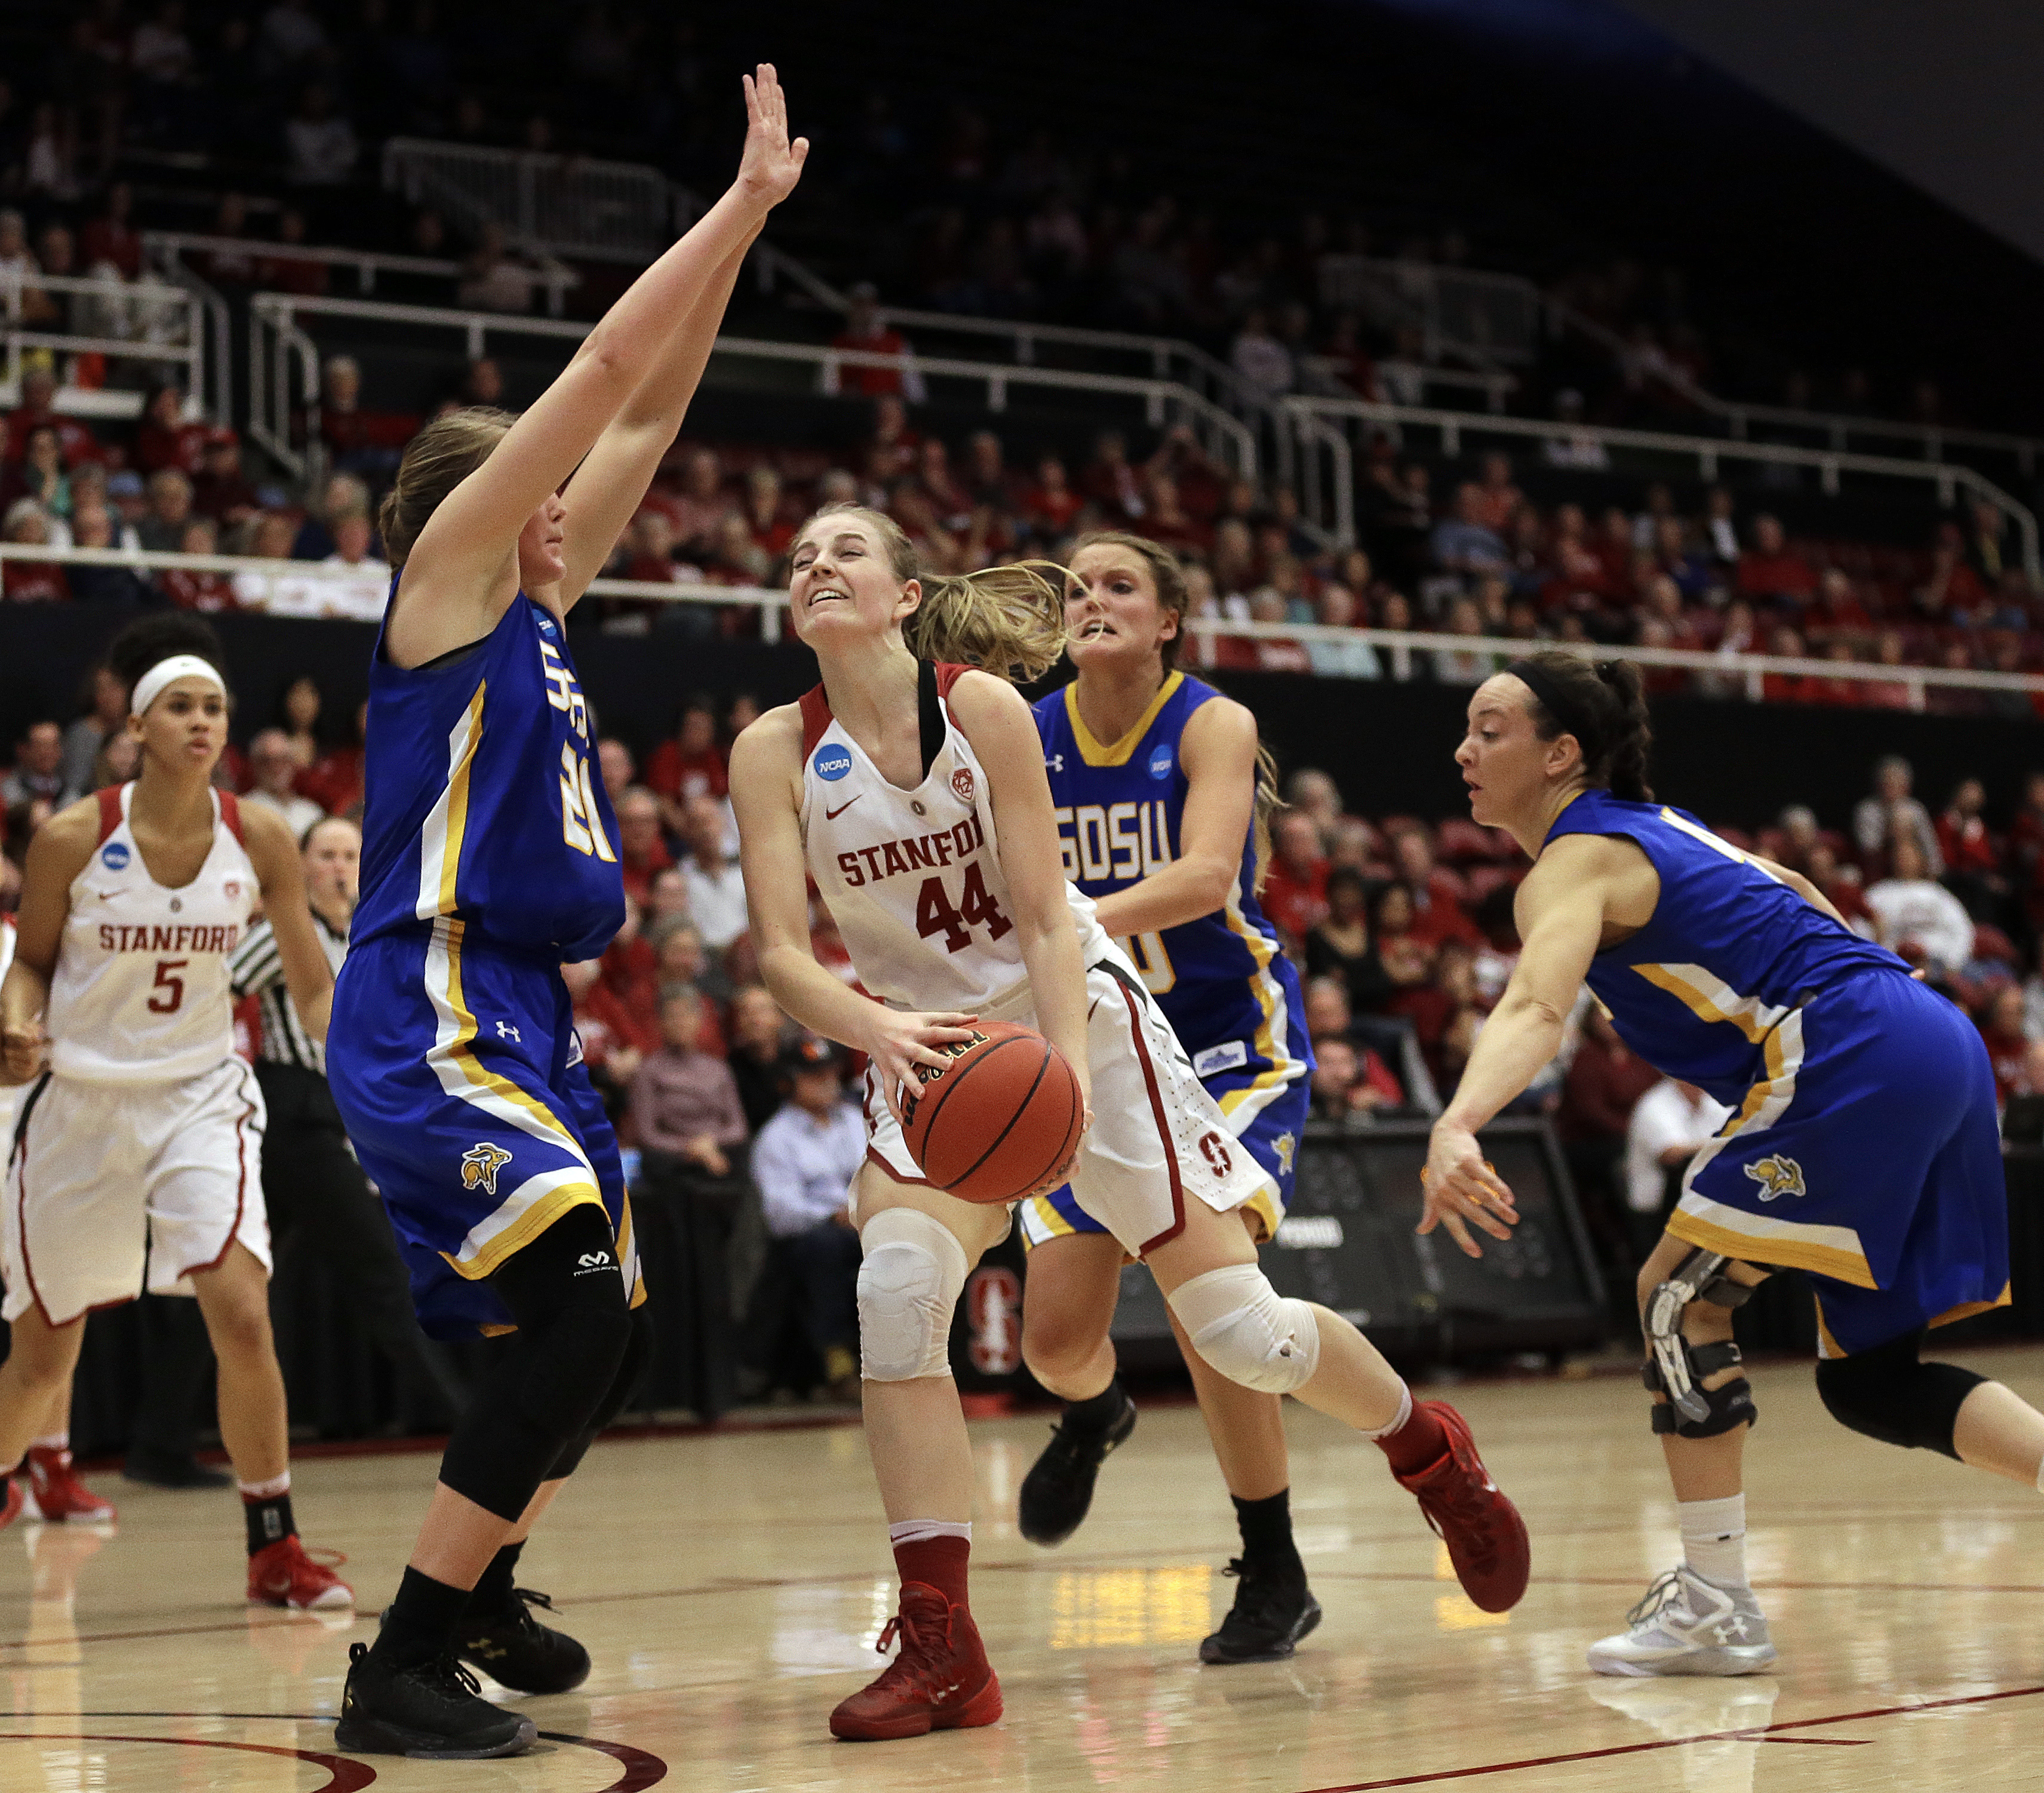 Stanford's Karlie Samuelson (44) looks to shoot against South Dakota State's Clarissa Ober (21) in the first half of a second-round women's college basketball game in the NCAA Tournament, Monday, March 21, 2016, in Stanford, Calif. (AP Photo/Ben Margot)